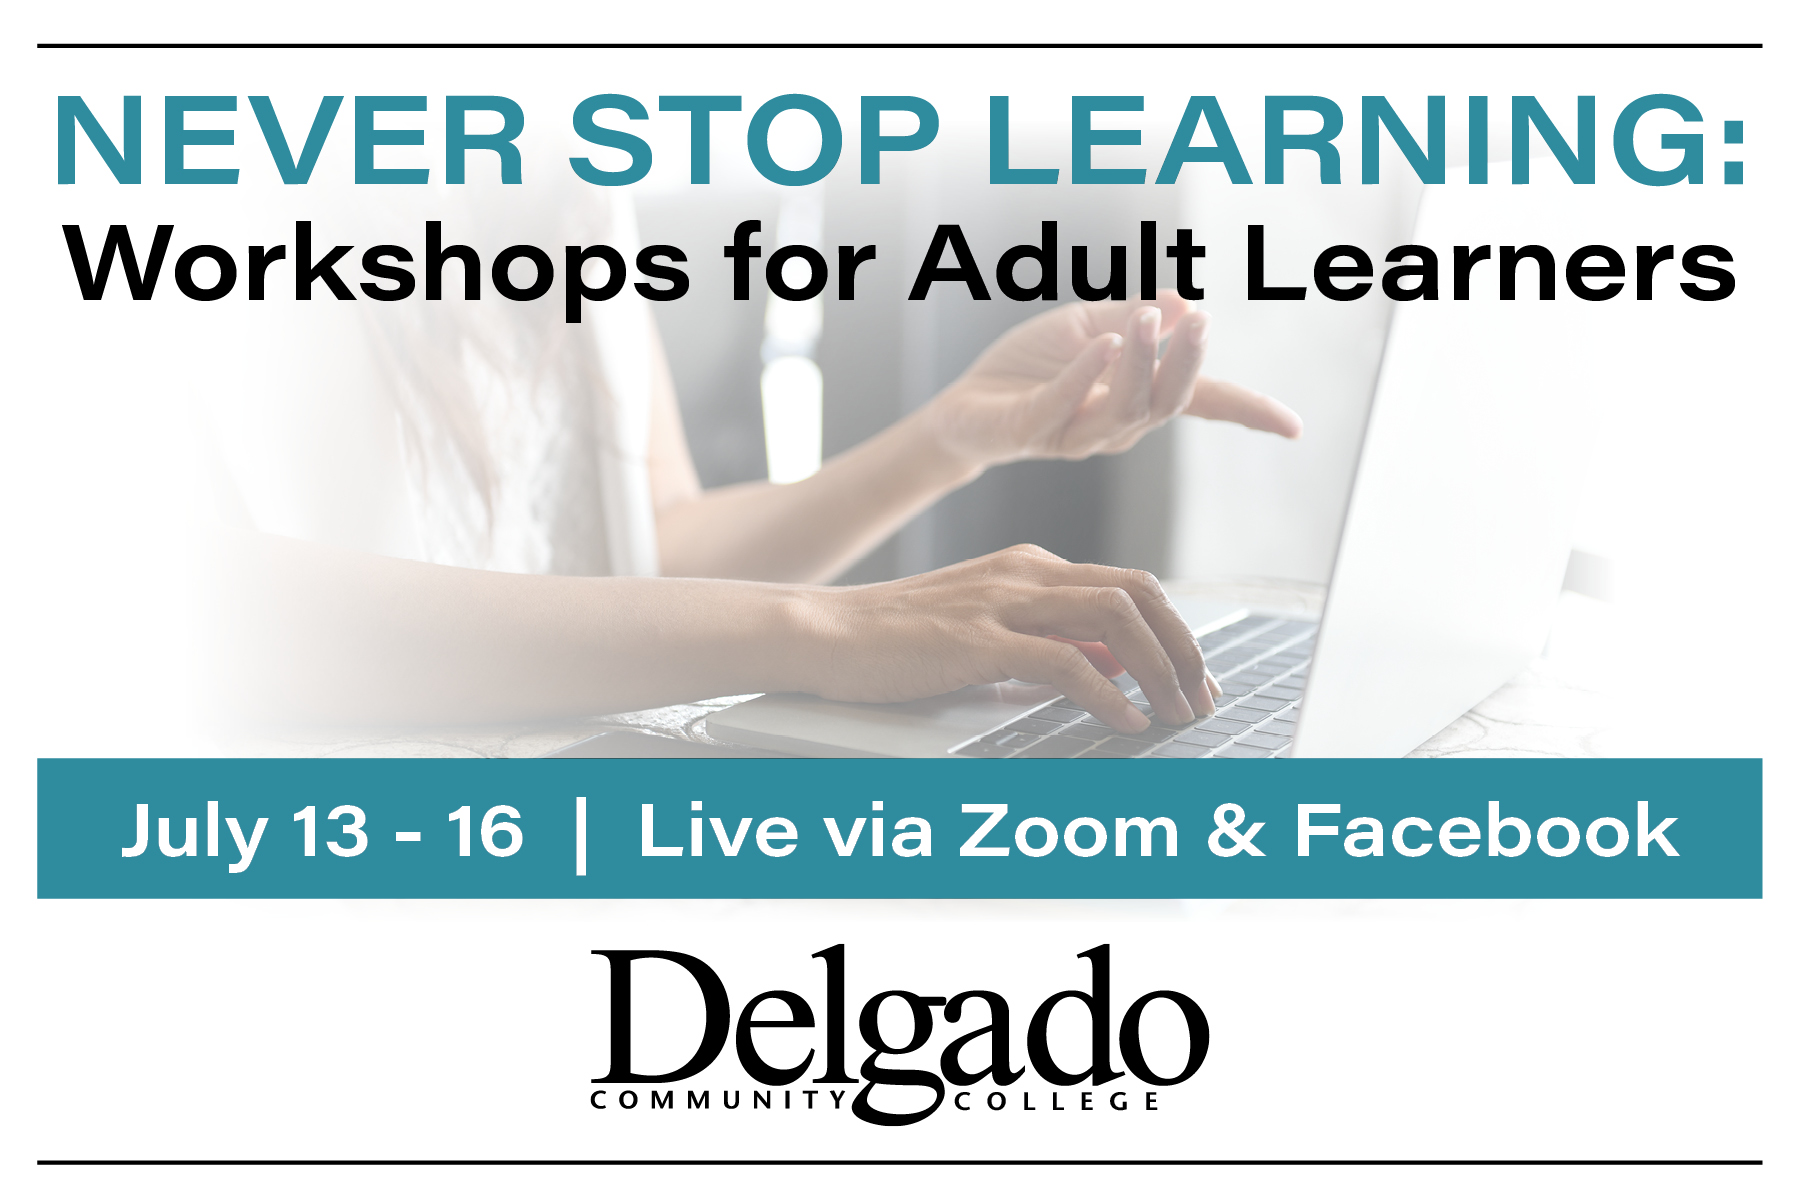 Adult Leaner workshops